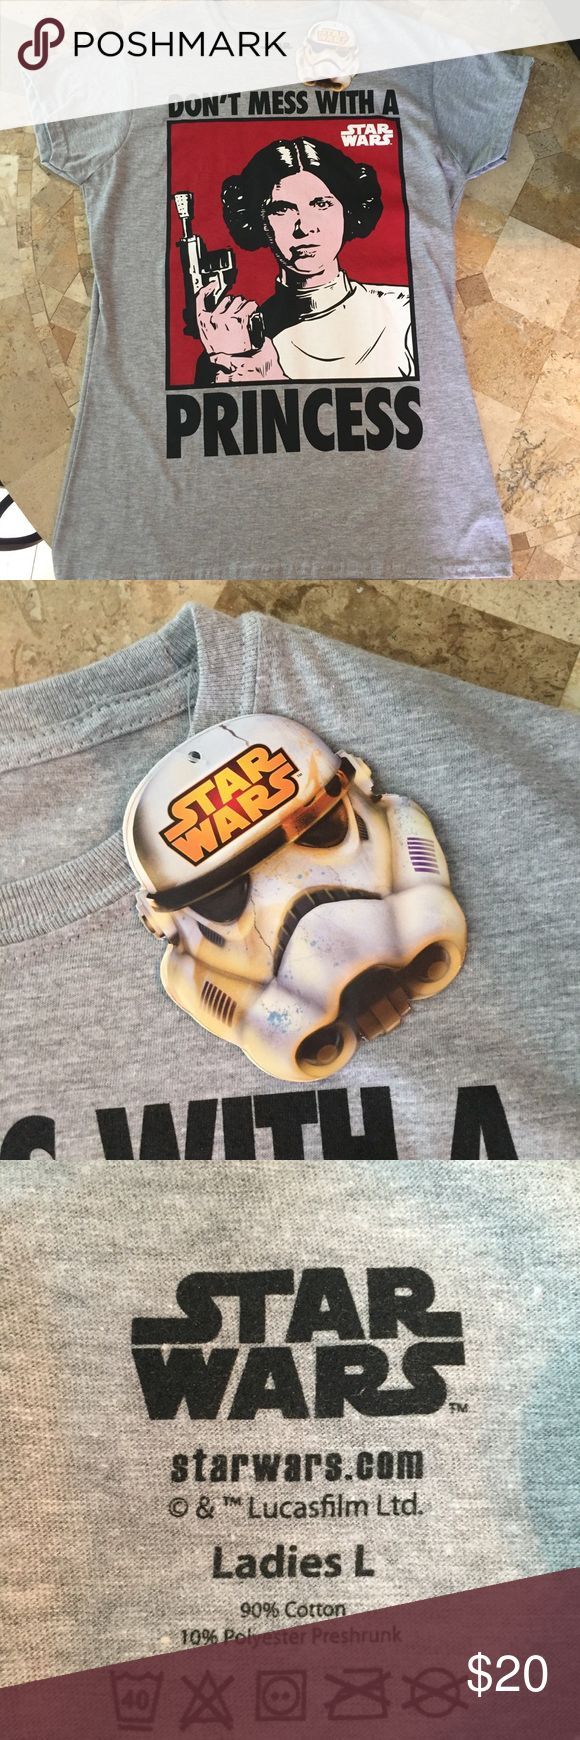 Star Wars Princess Leia T-shirt NWT t-shirt with a super cute quote! Princess Leia is a classic. This top would be cute for every day wear or you could even wear it to a costume/Halloween event or party if you don't want to dress up! Tops Tees - Short Sleeve